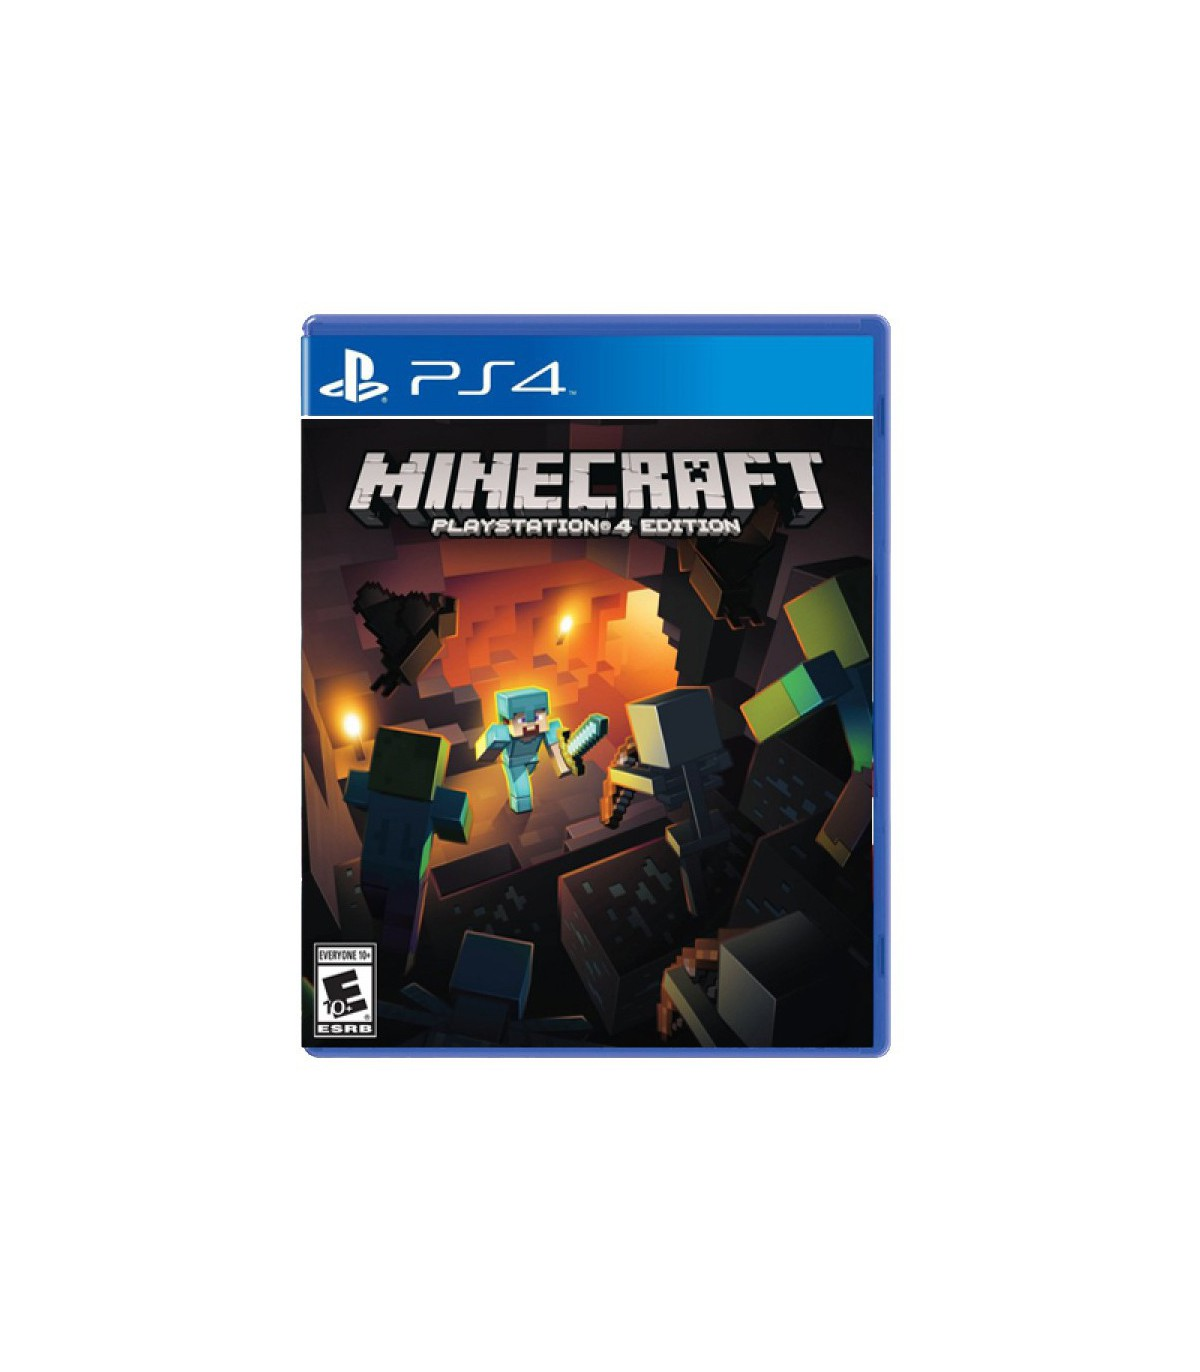 بازی Minecraft: PlayStation 4 Edition - پلی استیشن 4